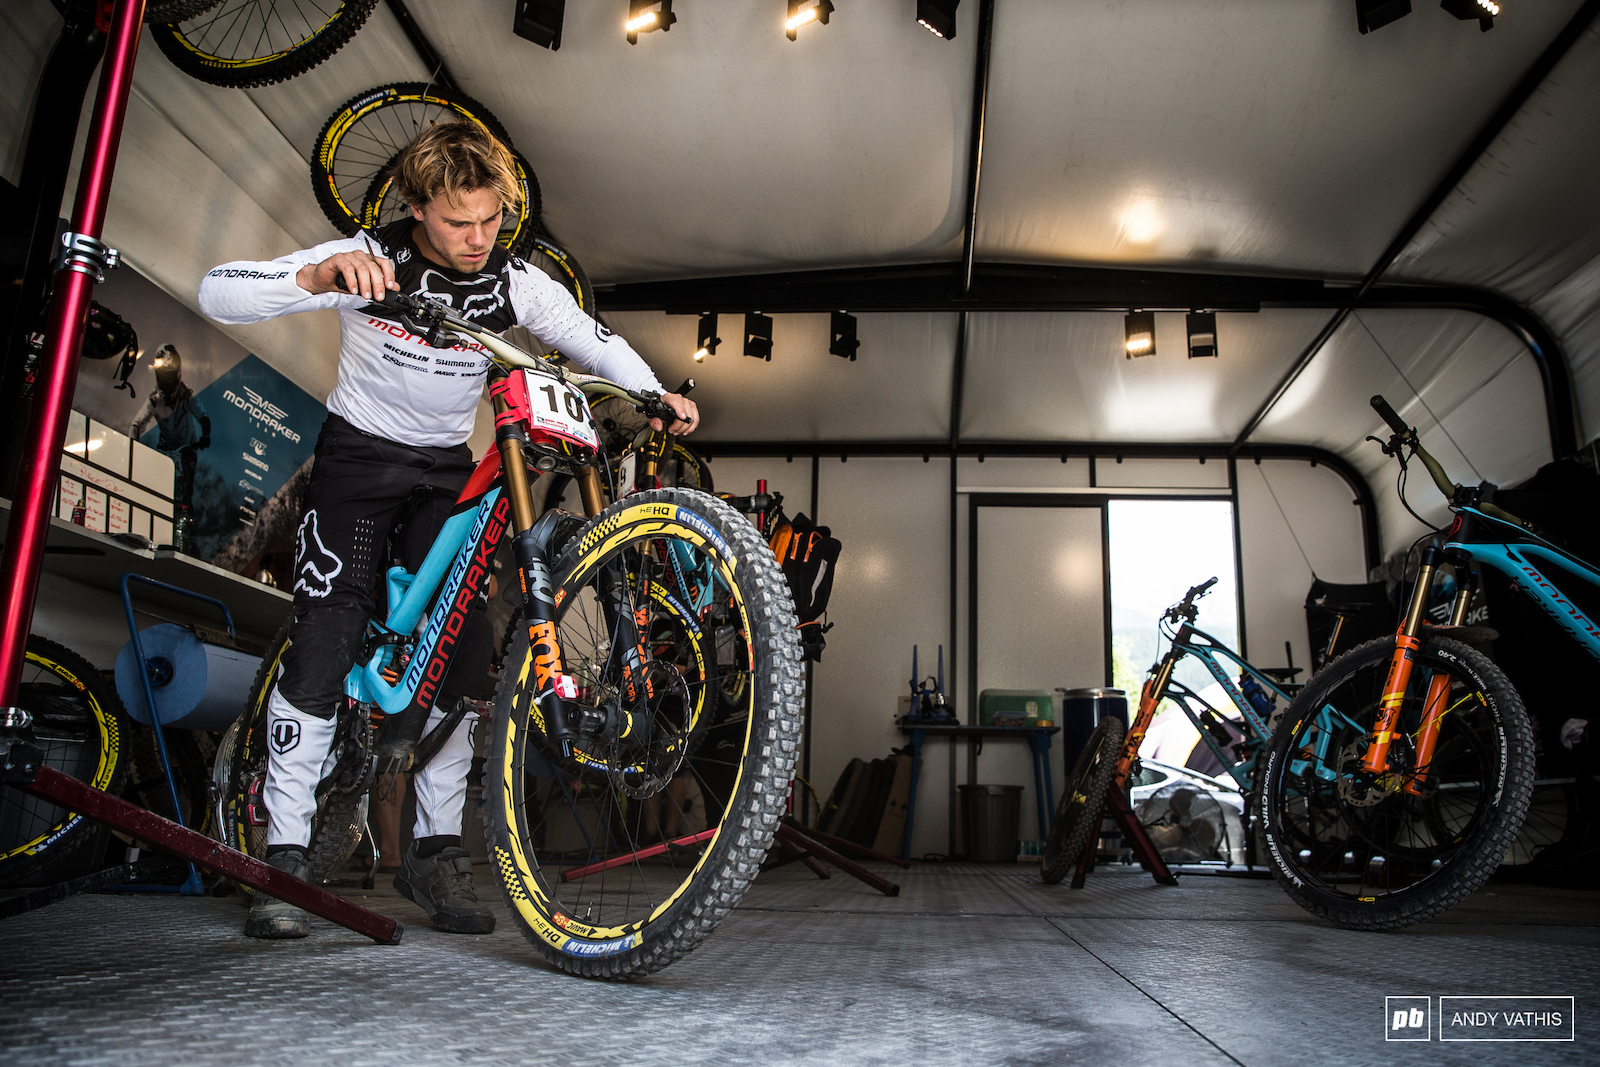 Laurie Greenland putting in the final touches on his race rig. Unfortunately no amount of fine tuning can prevent an untimely crash.